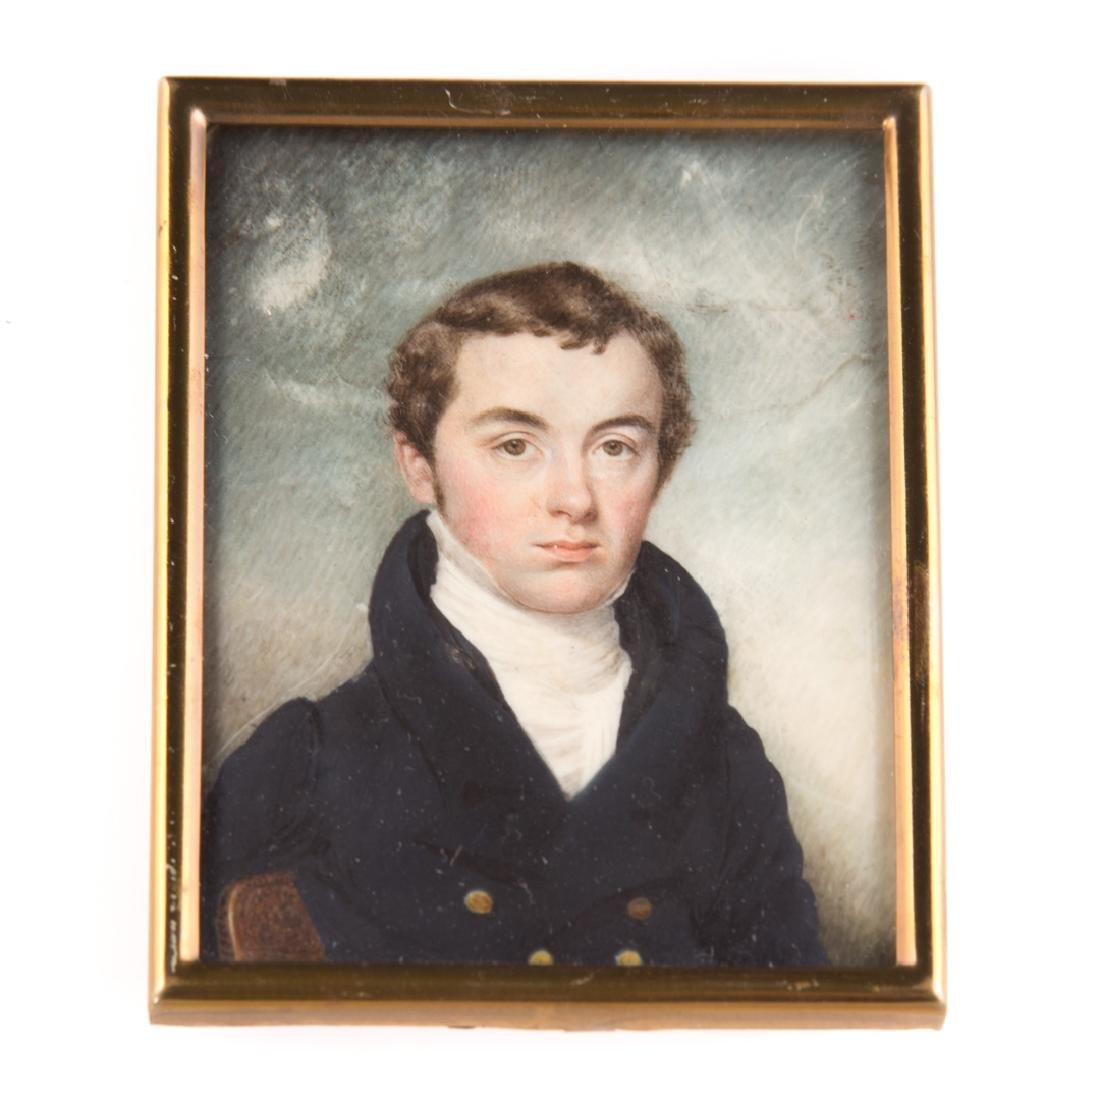 Attributed to Eliza Goodridge, miniature portrait